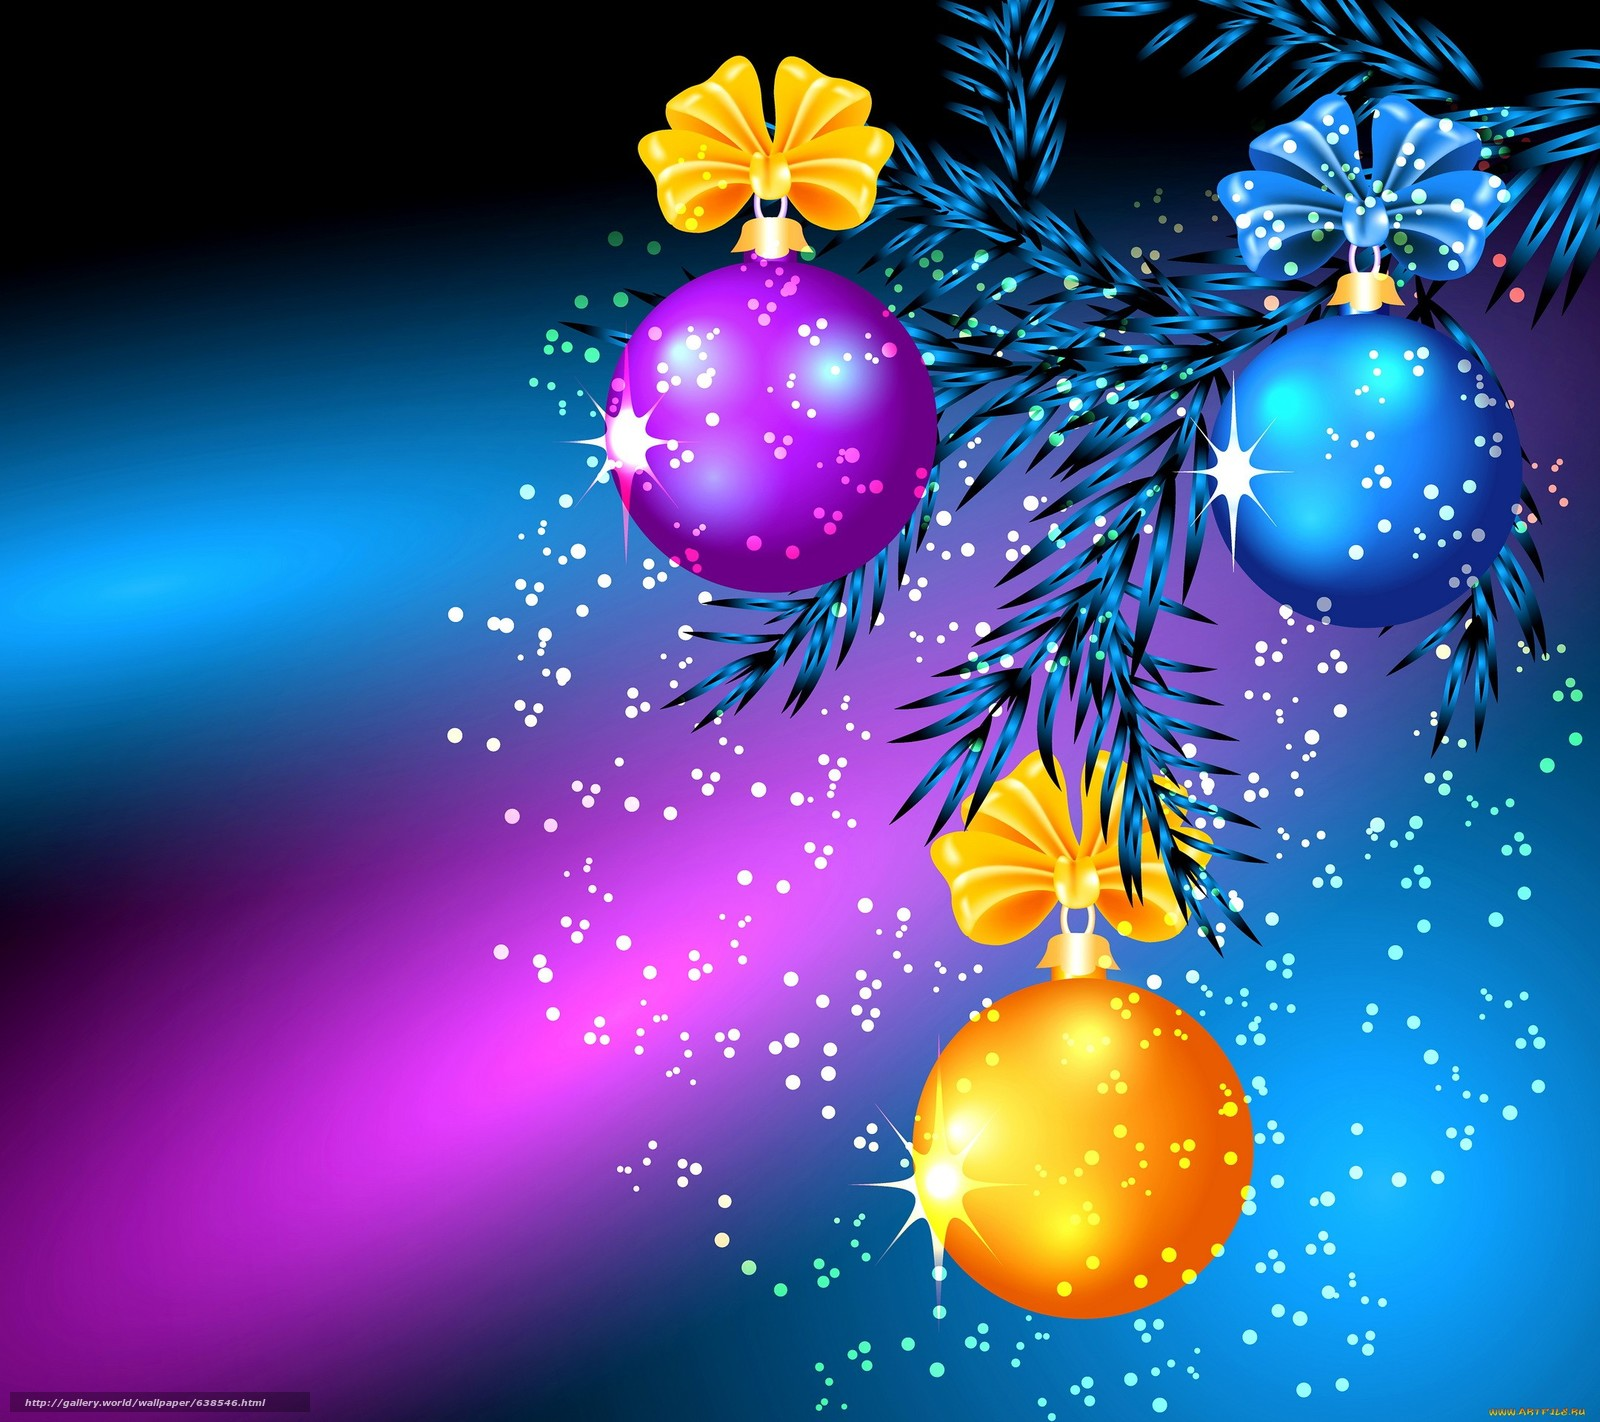 Download wallpaper New Year tree branch Balloons 1600x1422